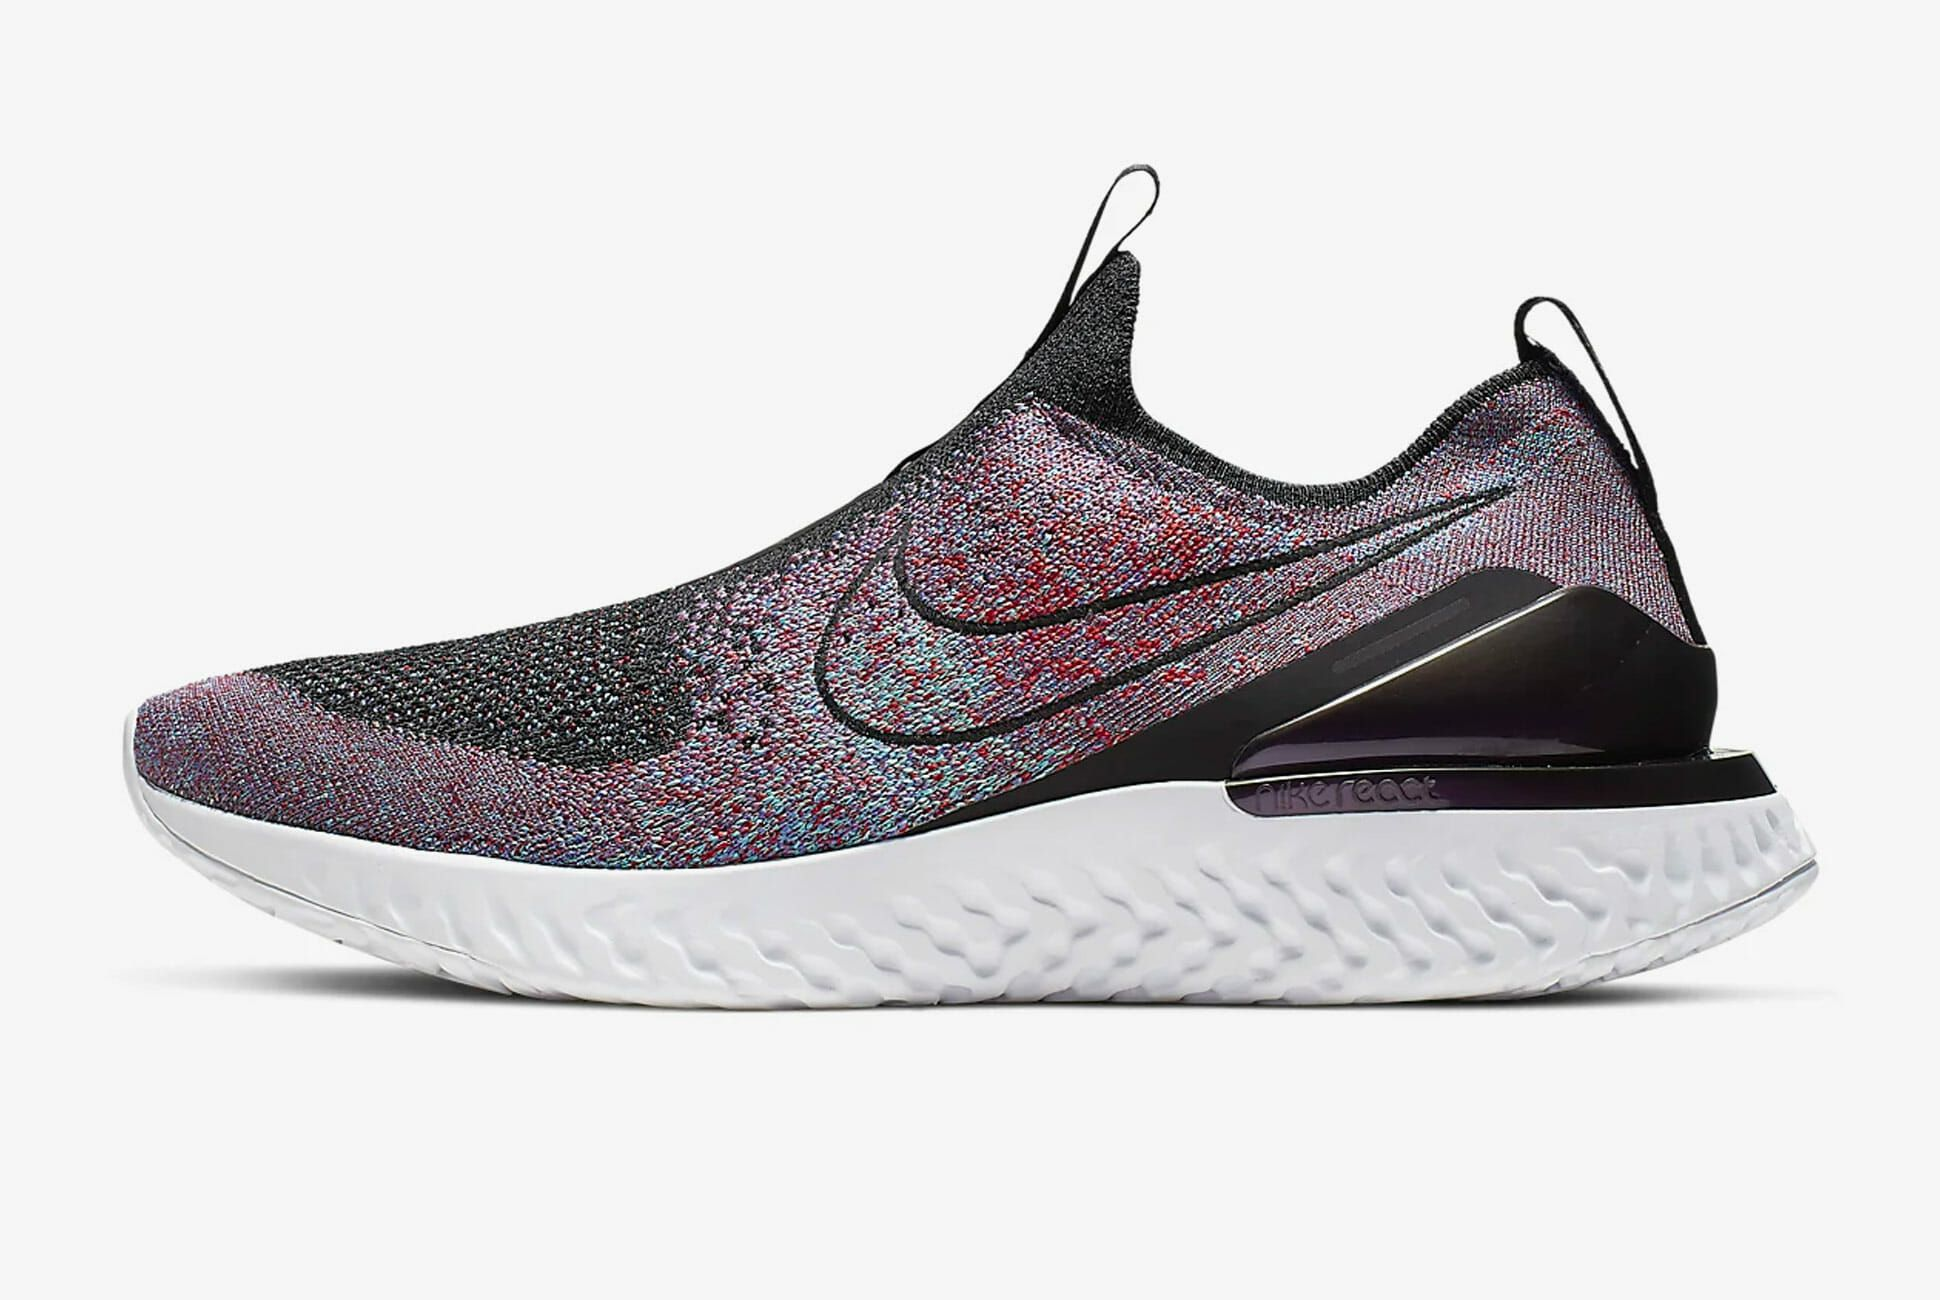 This Nike Laceless Running Shoe Is the